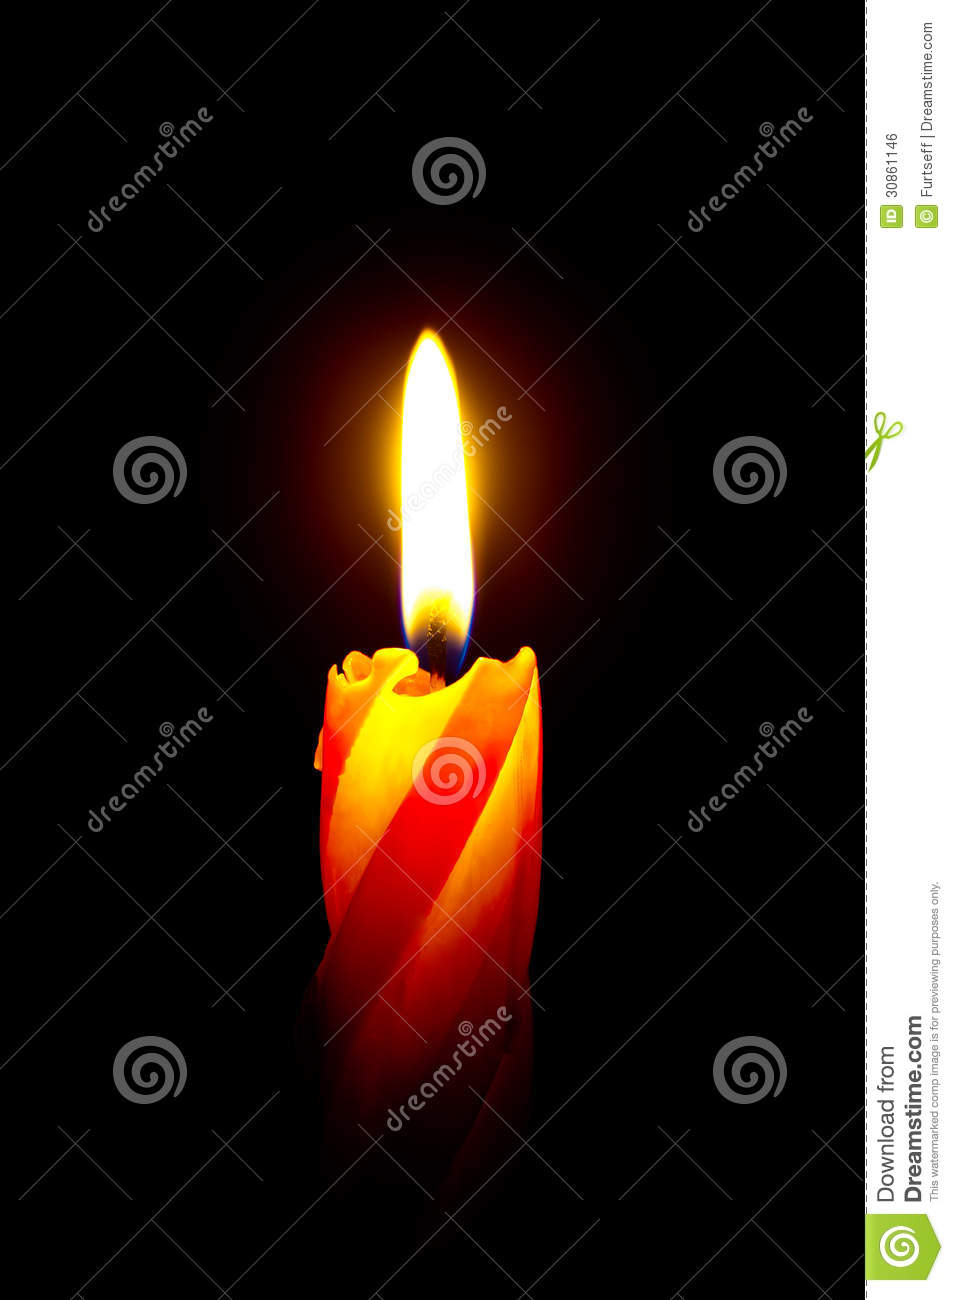 red candle black background - photo #49